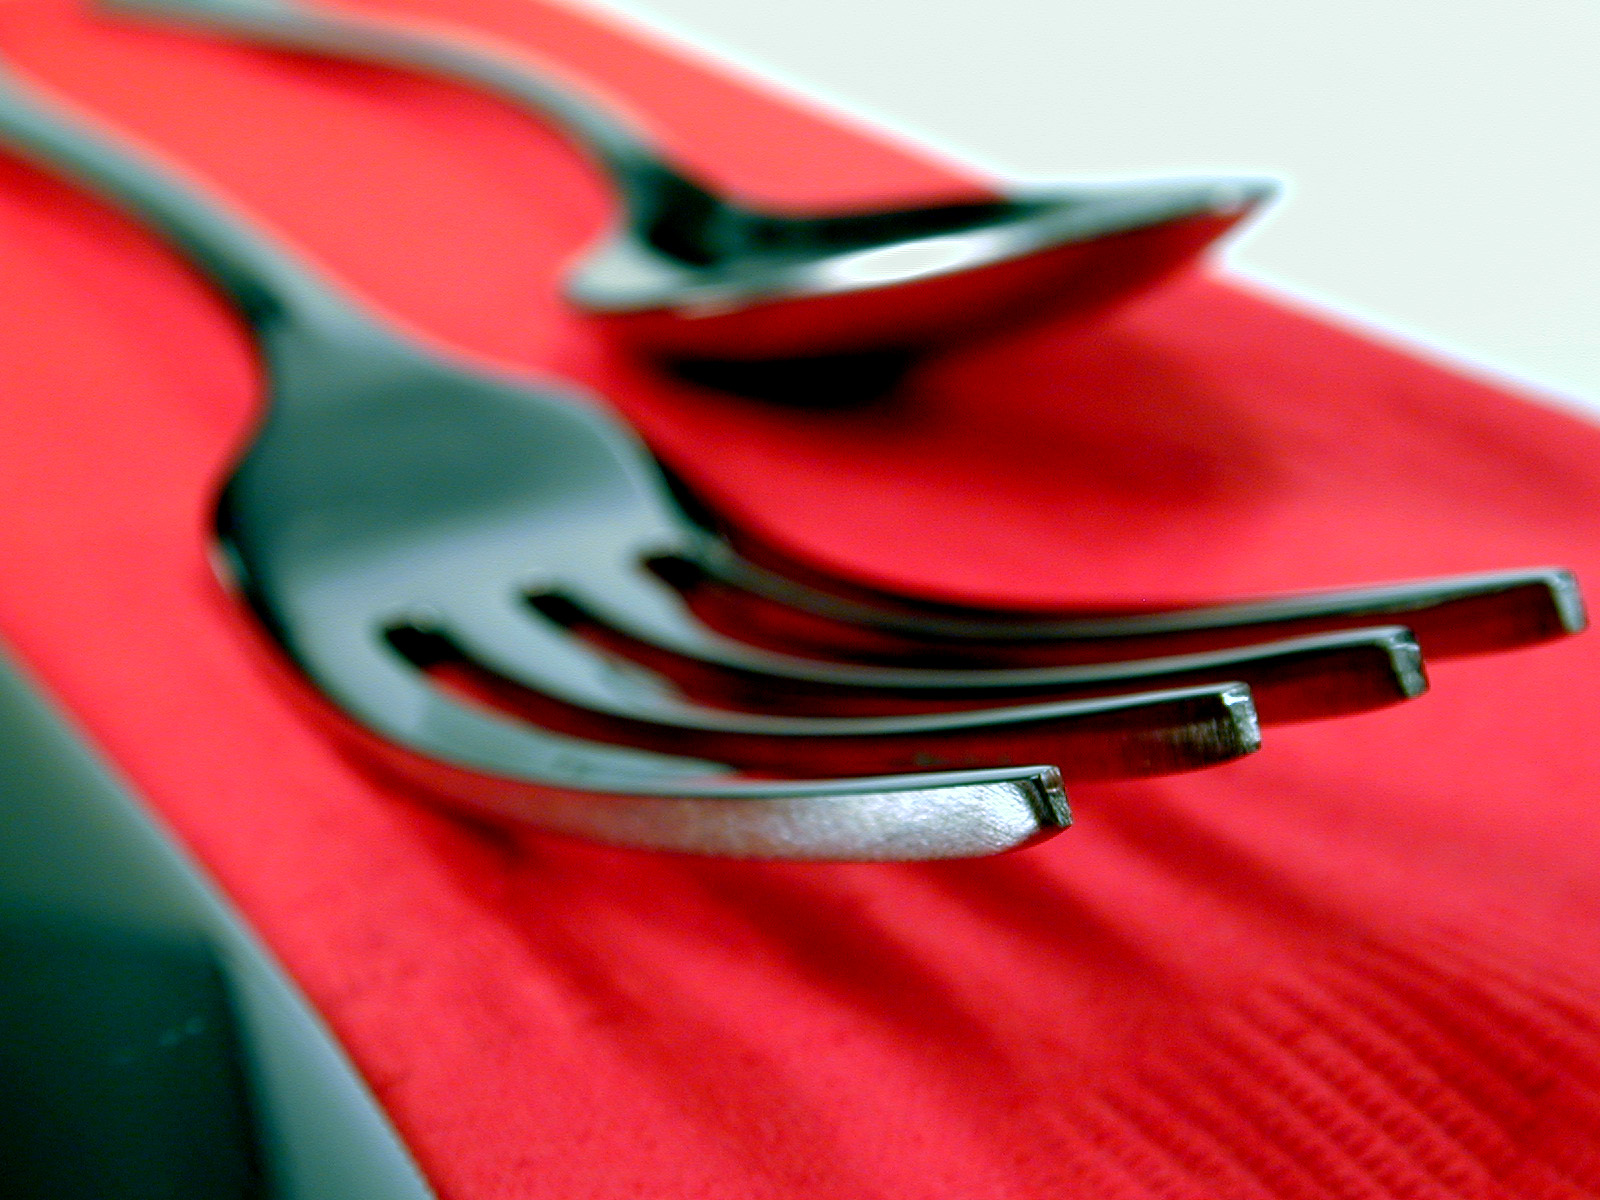 silverware_fork_red_napkin